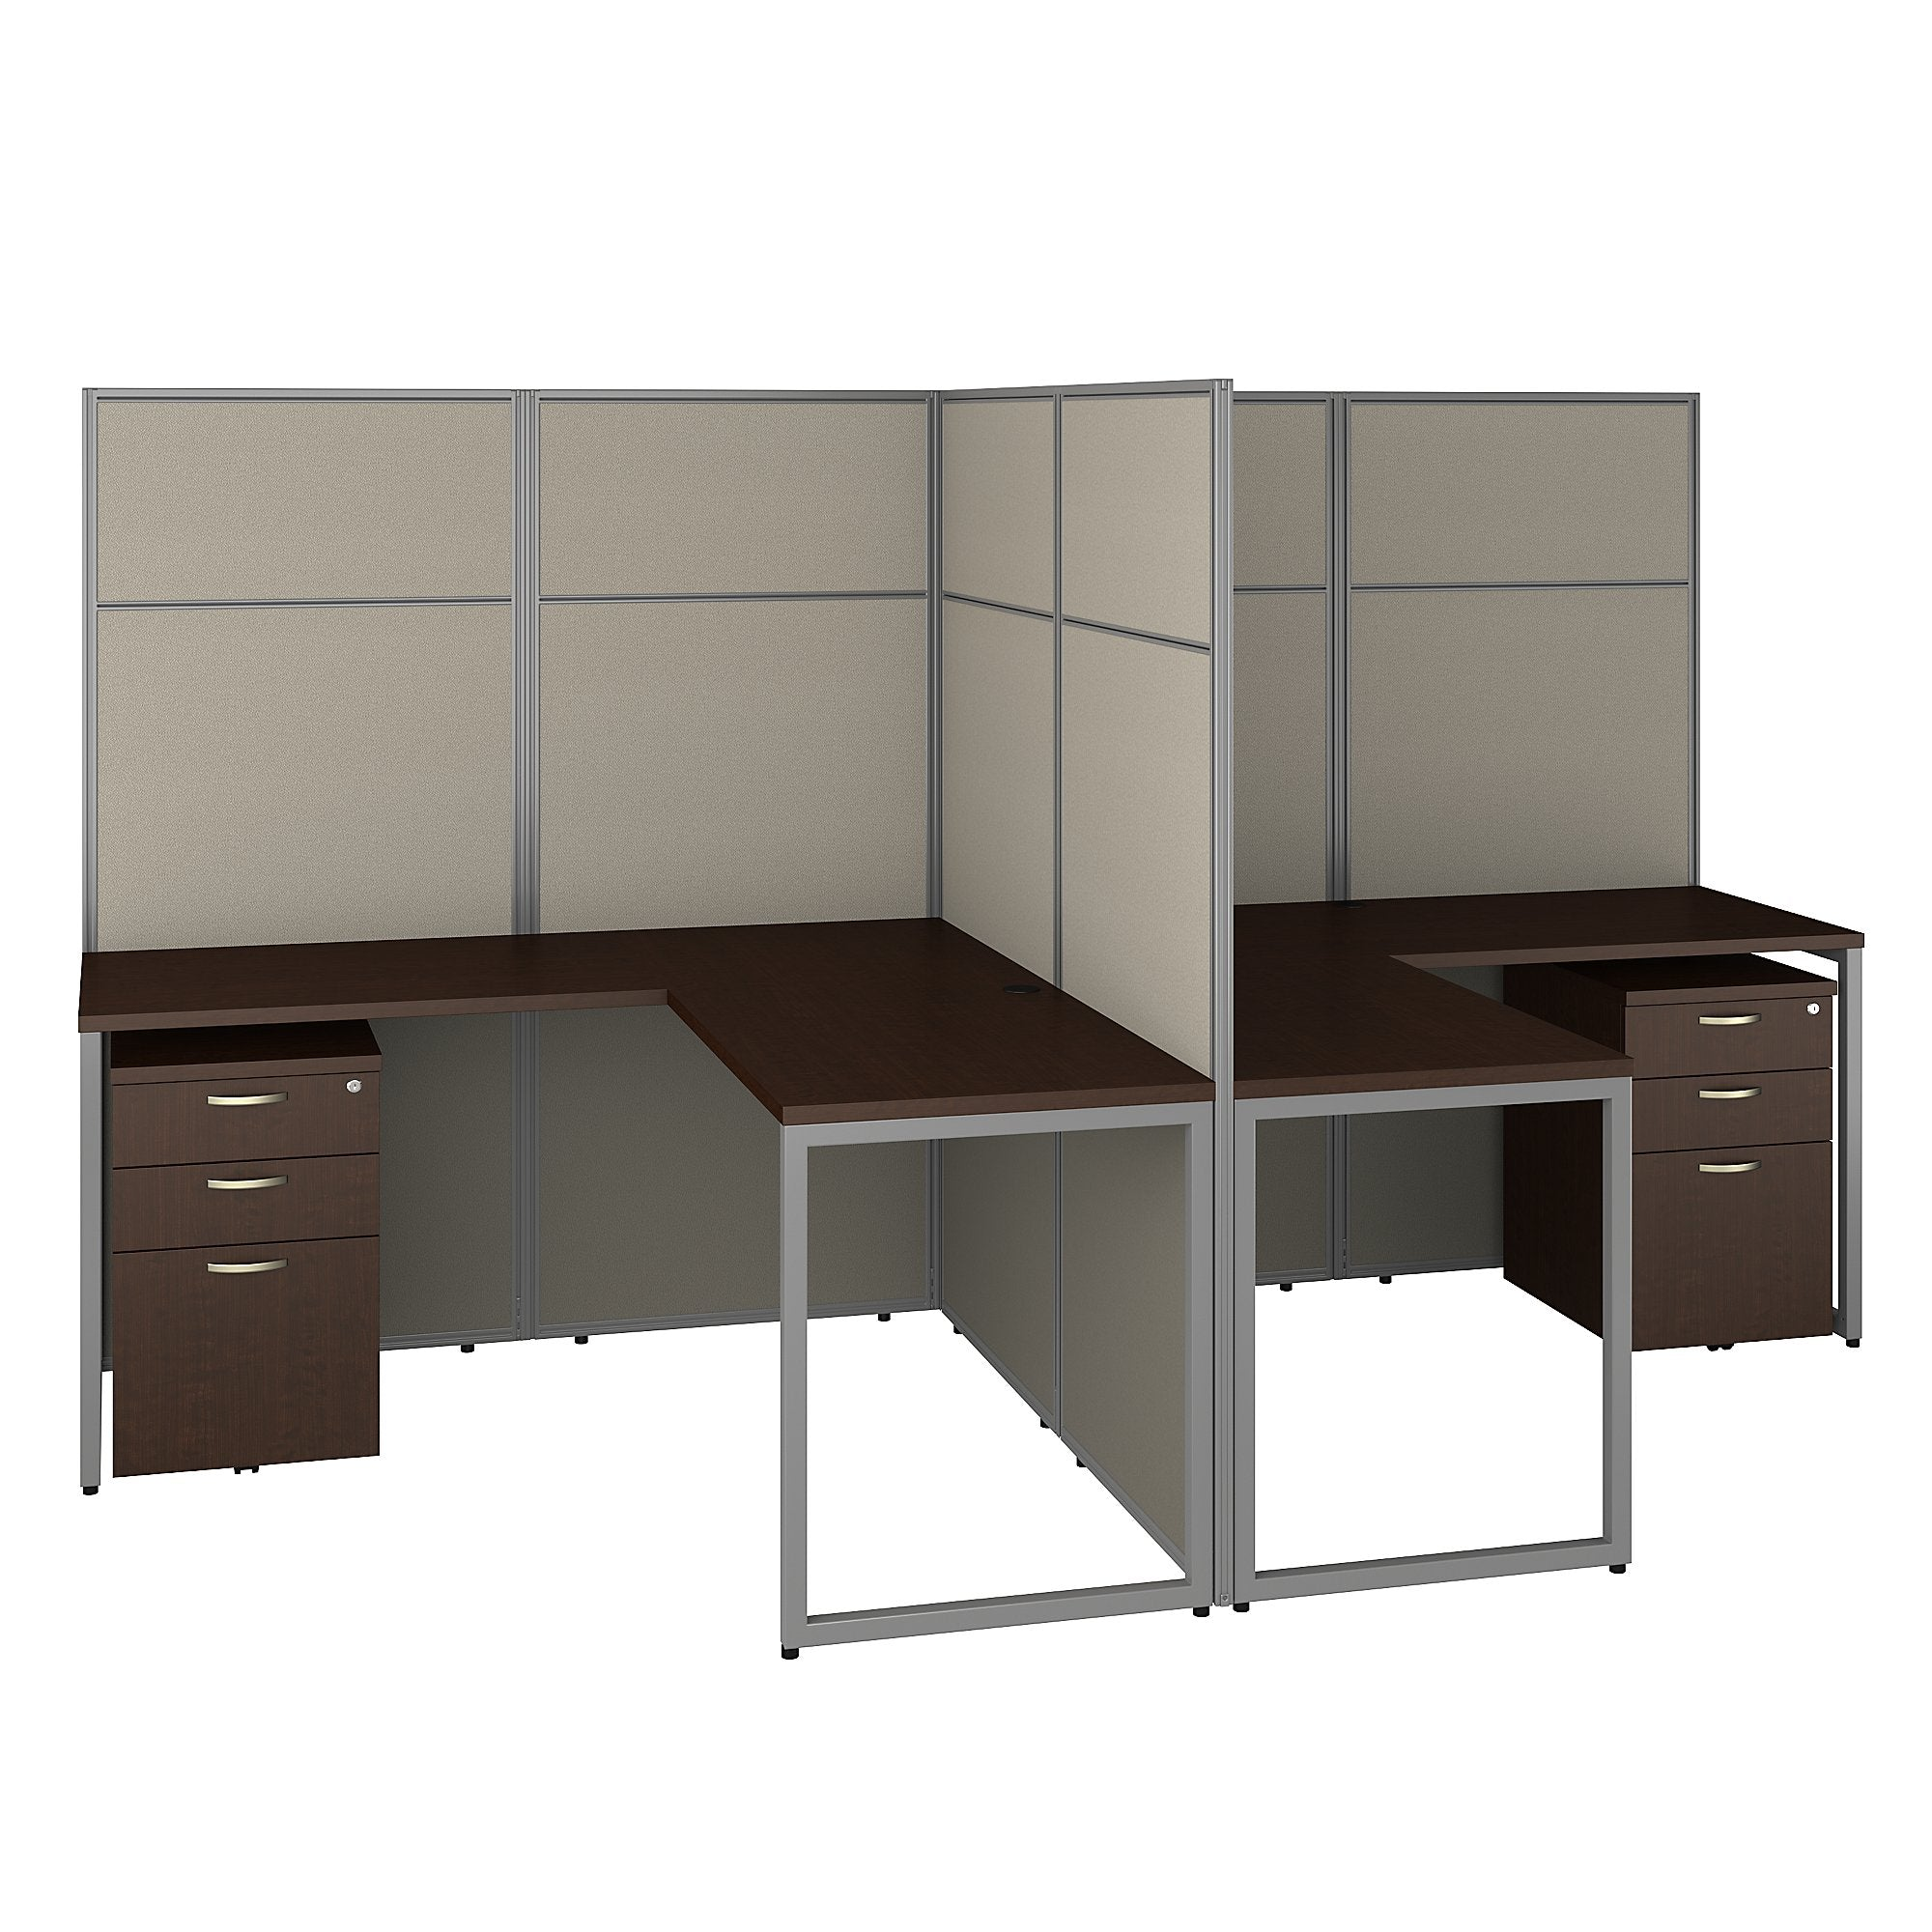 Bush Business Furniture Mocha Cherry Easy Office 60W 2 Person L Shaped Cubicle Desk with Drawers and 66H Panels